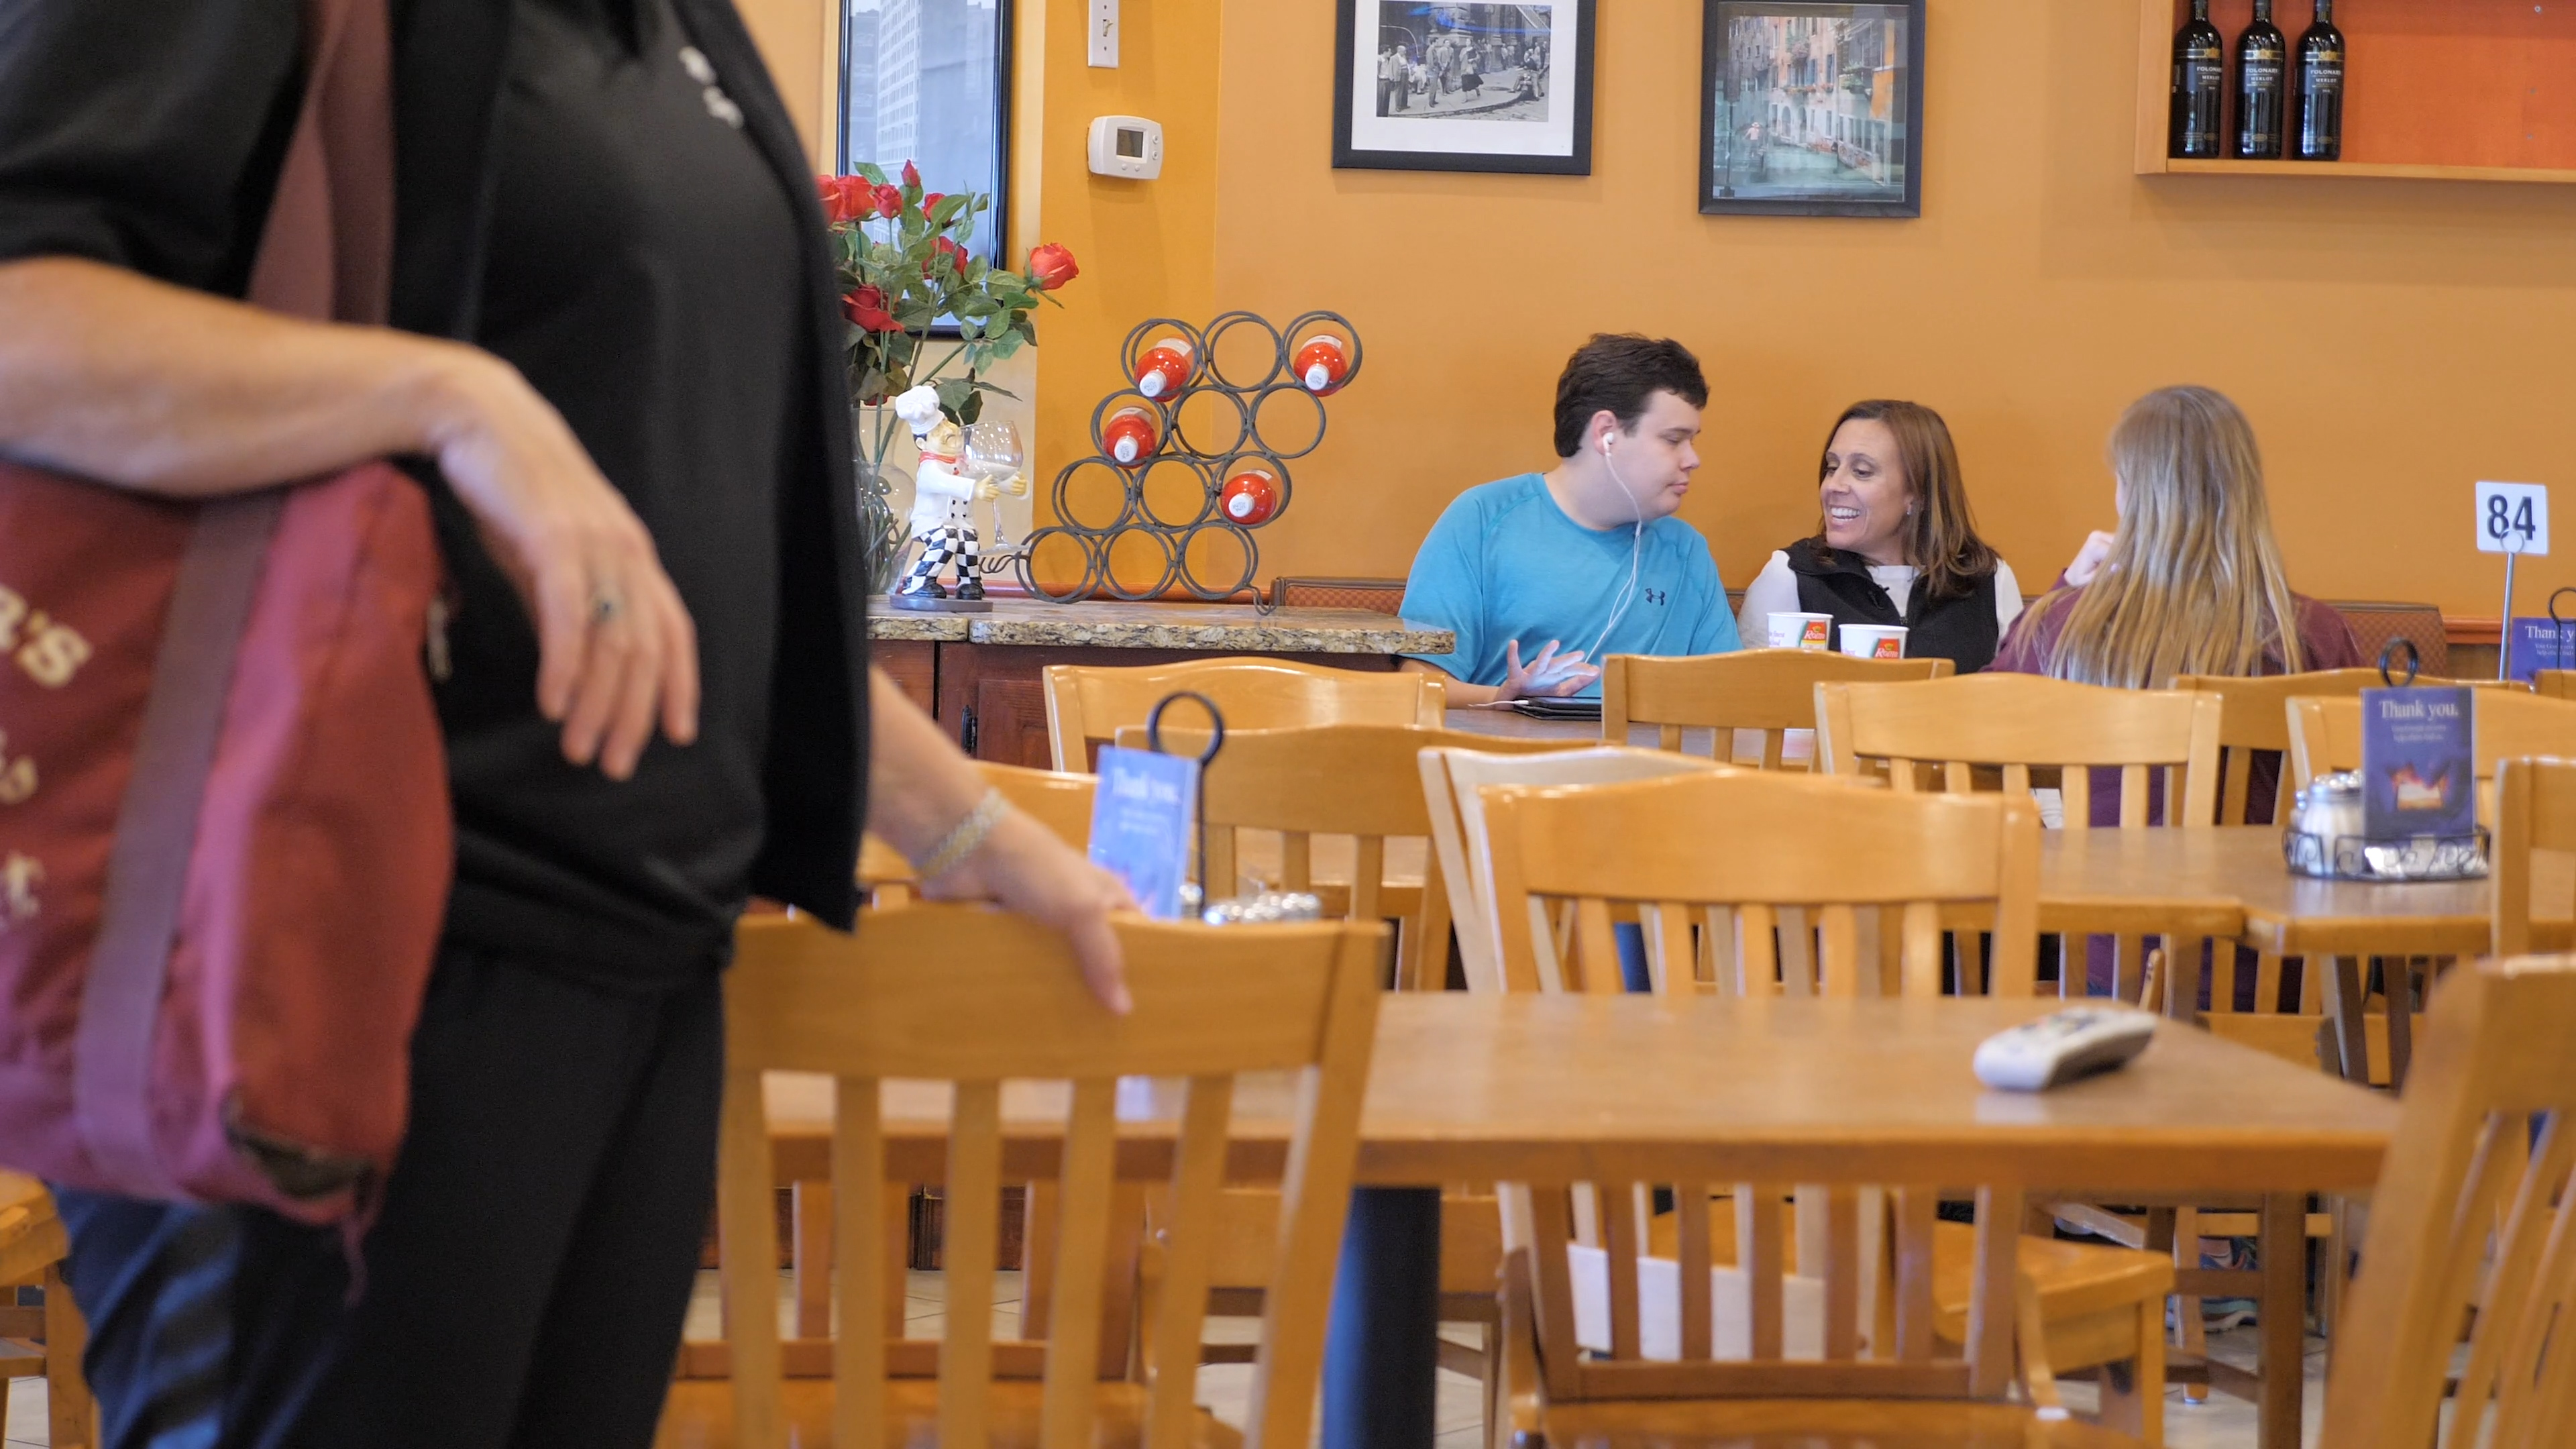 Still from the documentary of Kyle and family at lunch.